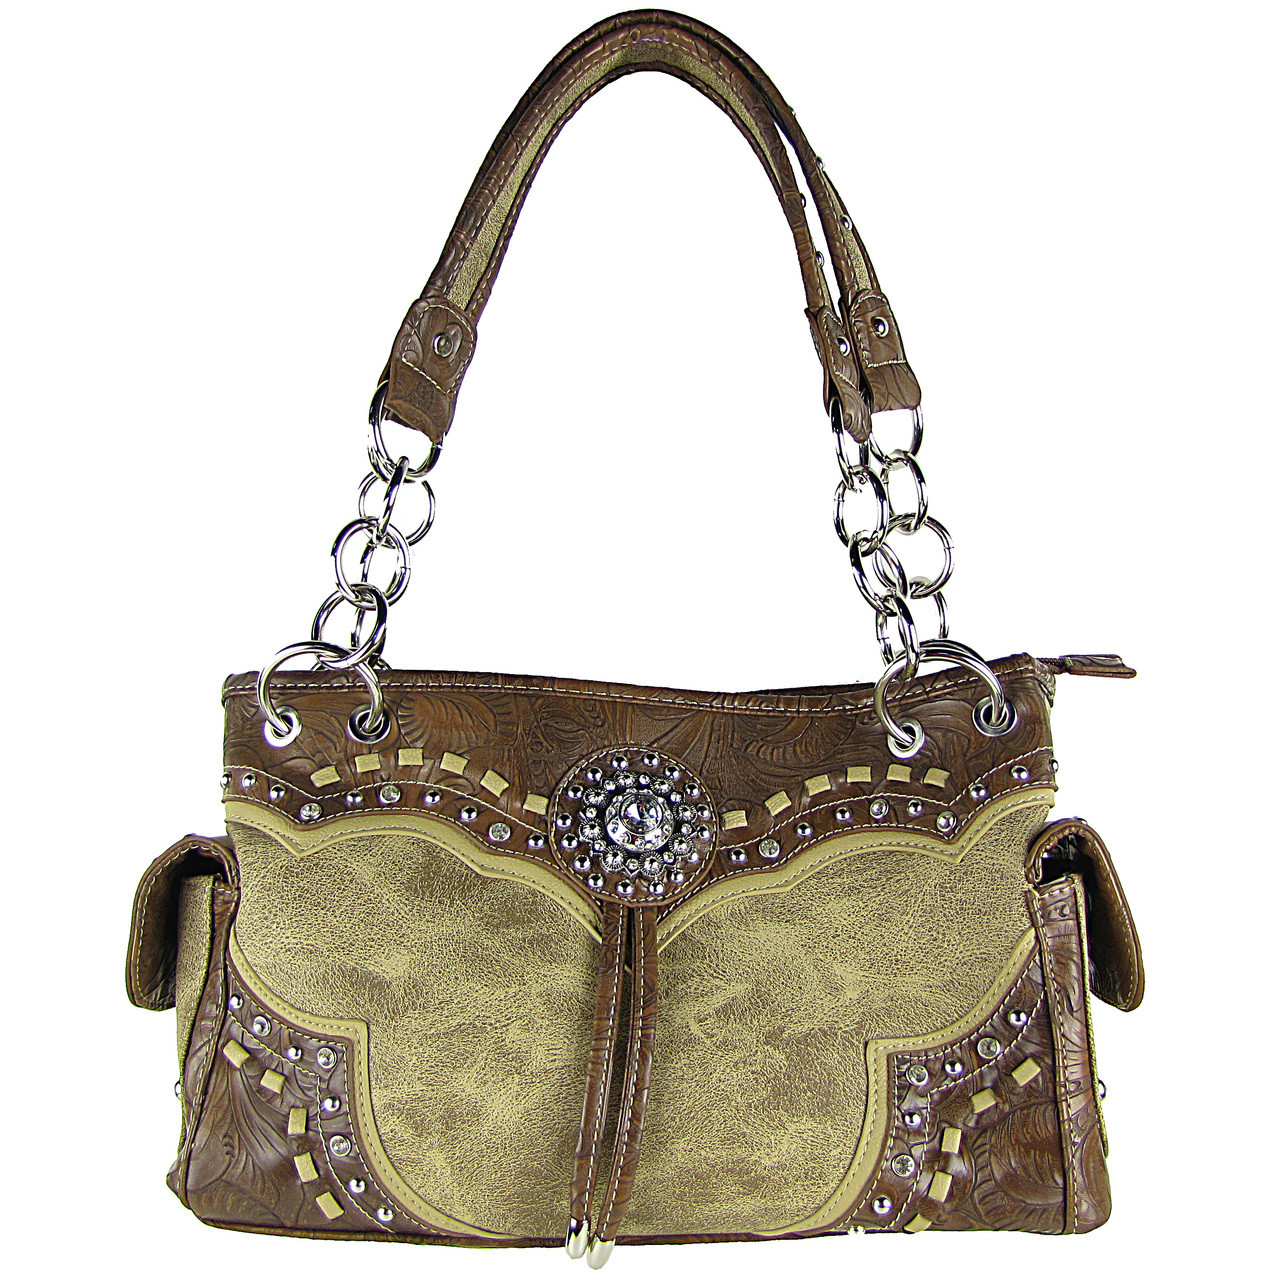 TAN WESTERN STUDDED FLOWER RHINESTONE LOOK SHOULDER HANDBAG HB1-CHF0063TAN